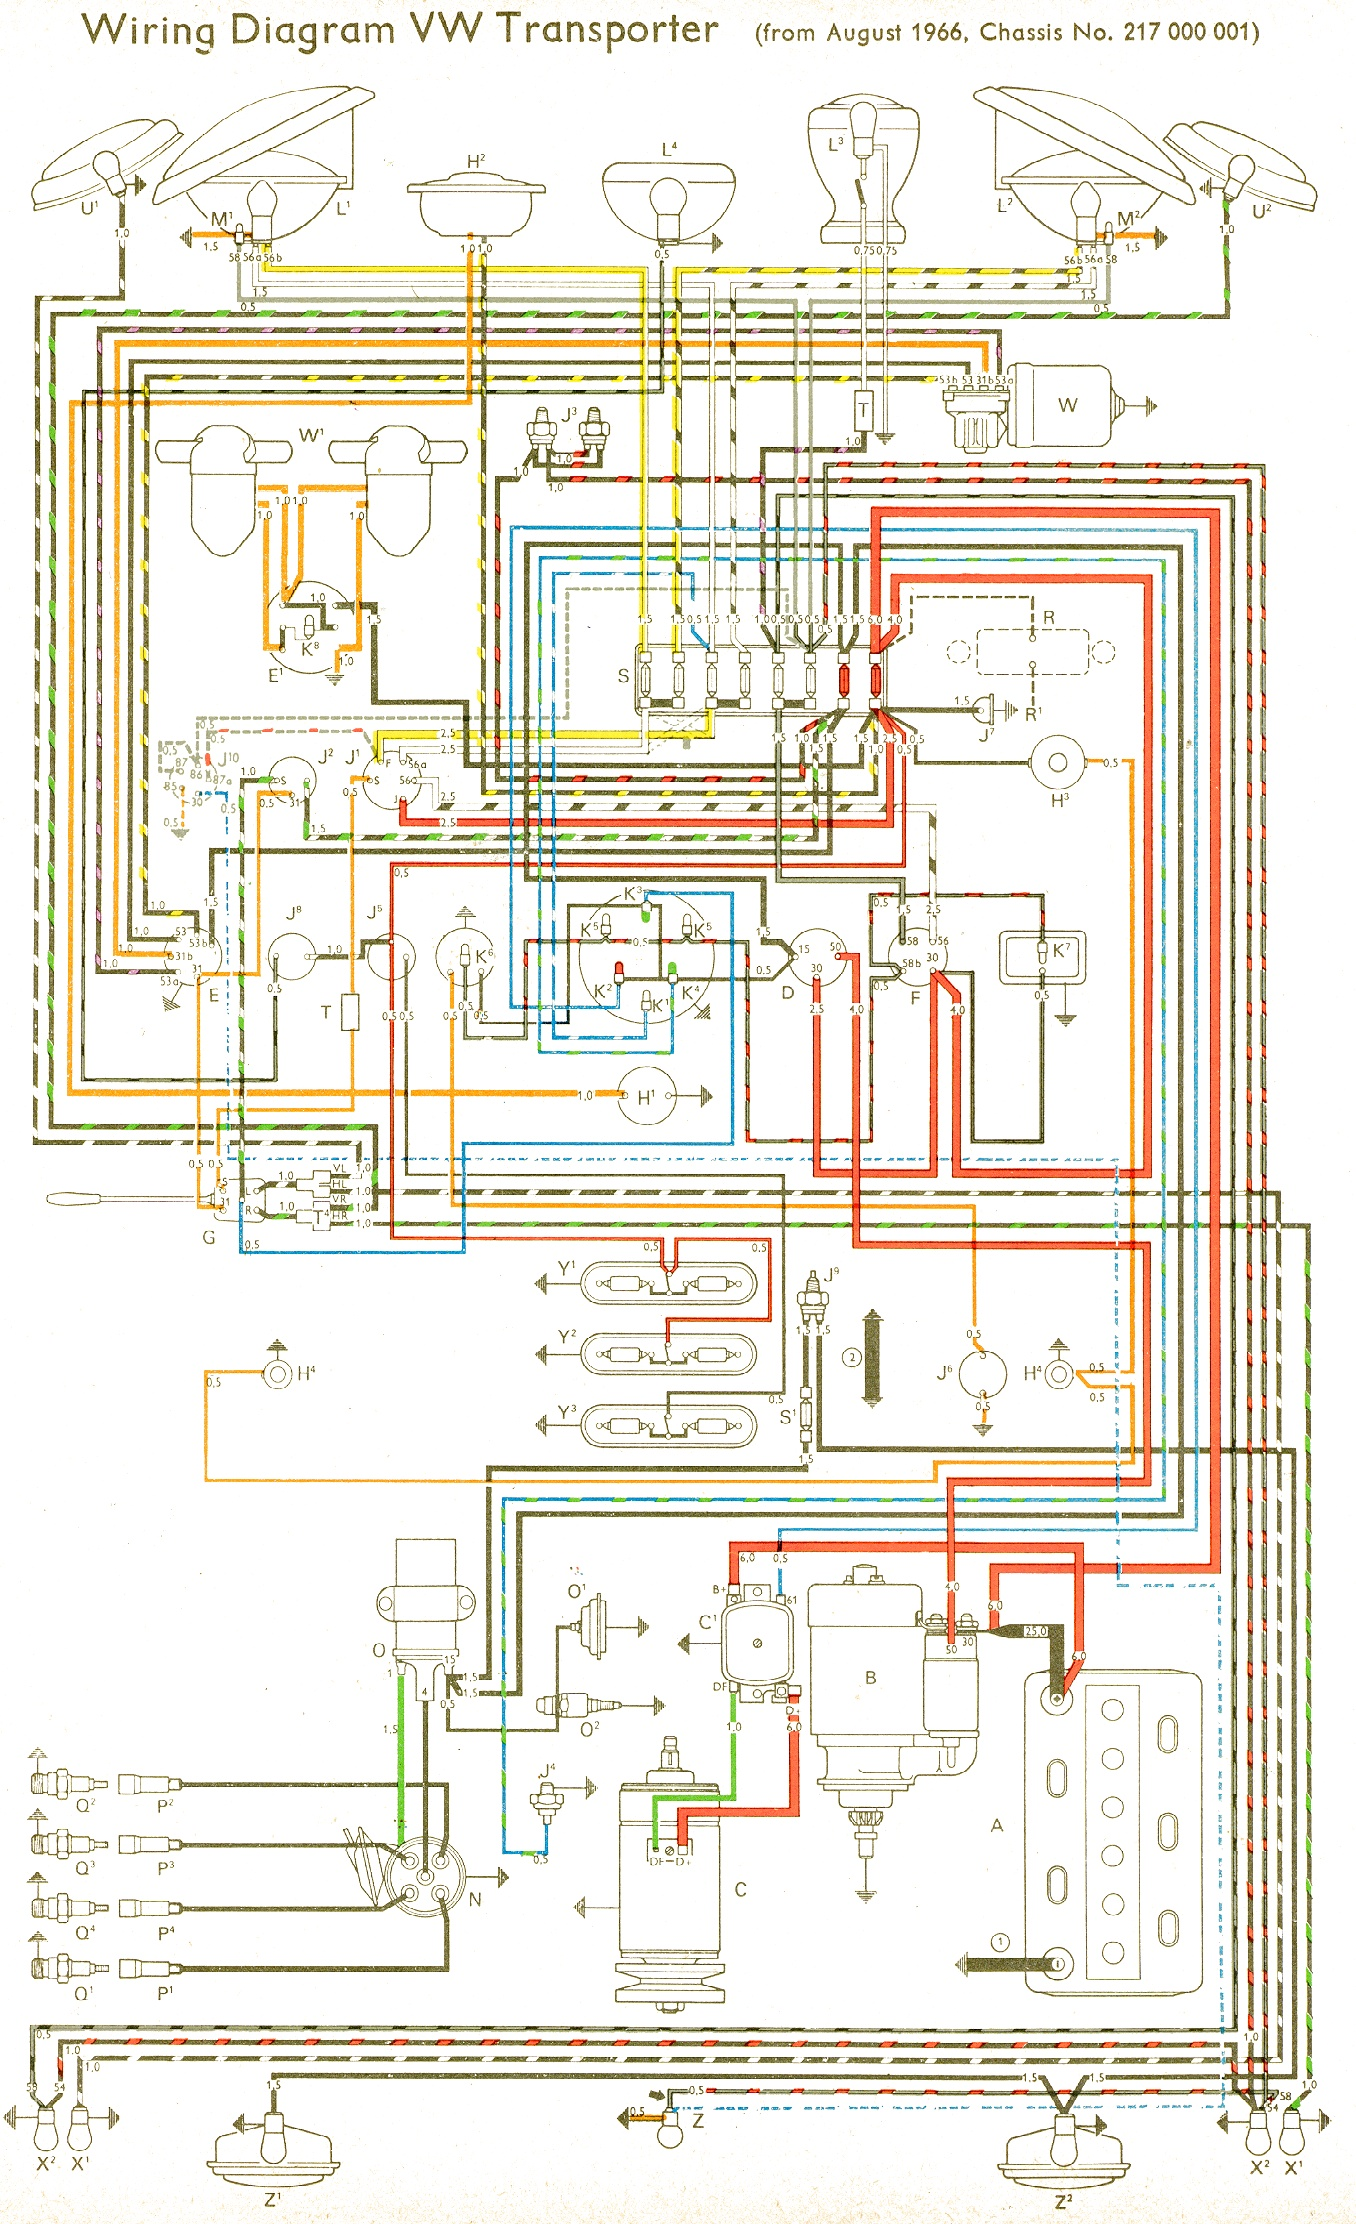 bluebird bus wiring diagrams data wiring diagrambluebird wiring schematic wiring library 1995 bluebird bus wiring diagram bluebird bus wiring diagrams